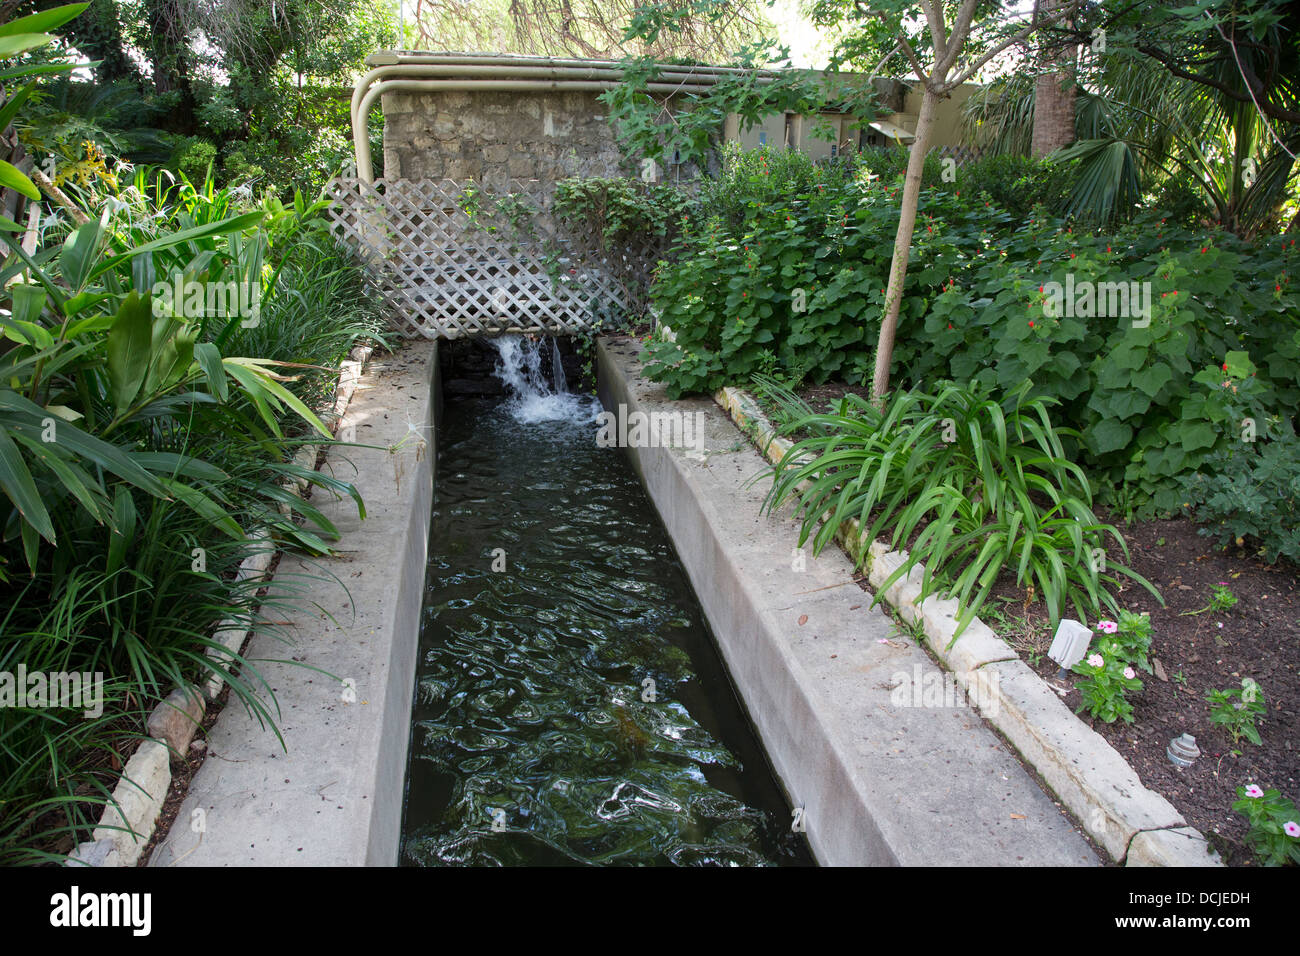 Acequia (irrigation canal) on the grounds of the Alamo - Stock Image